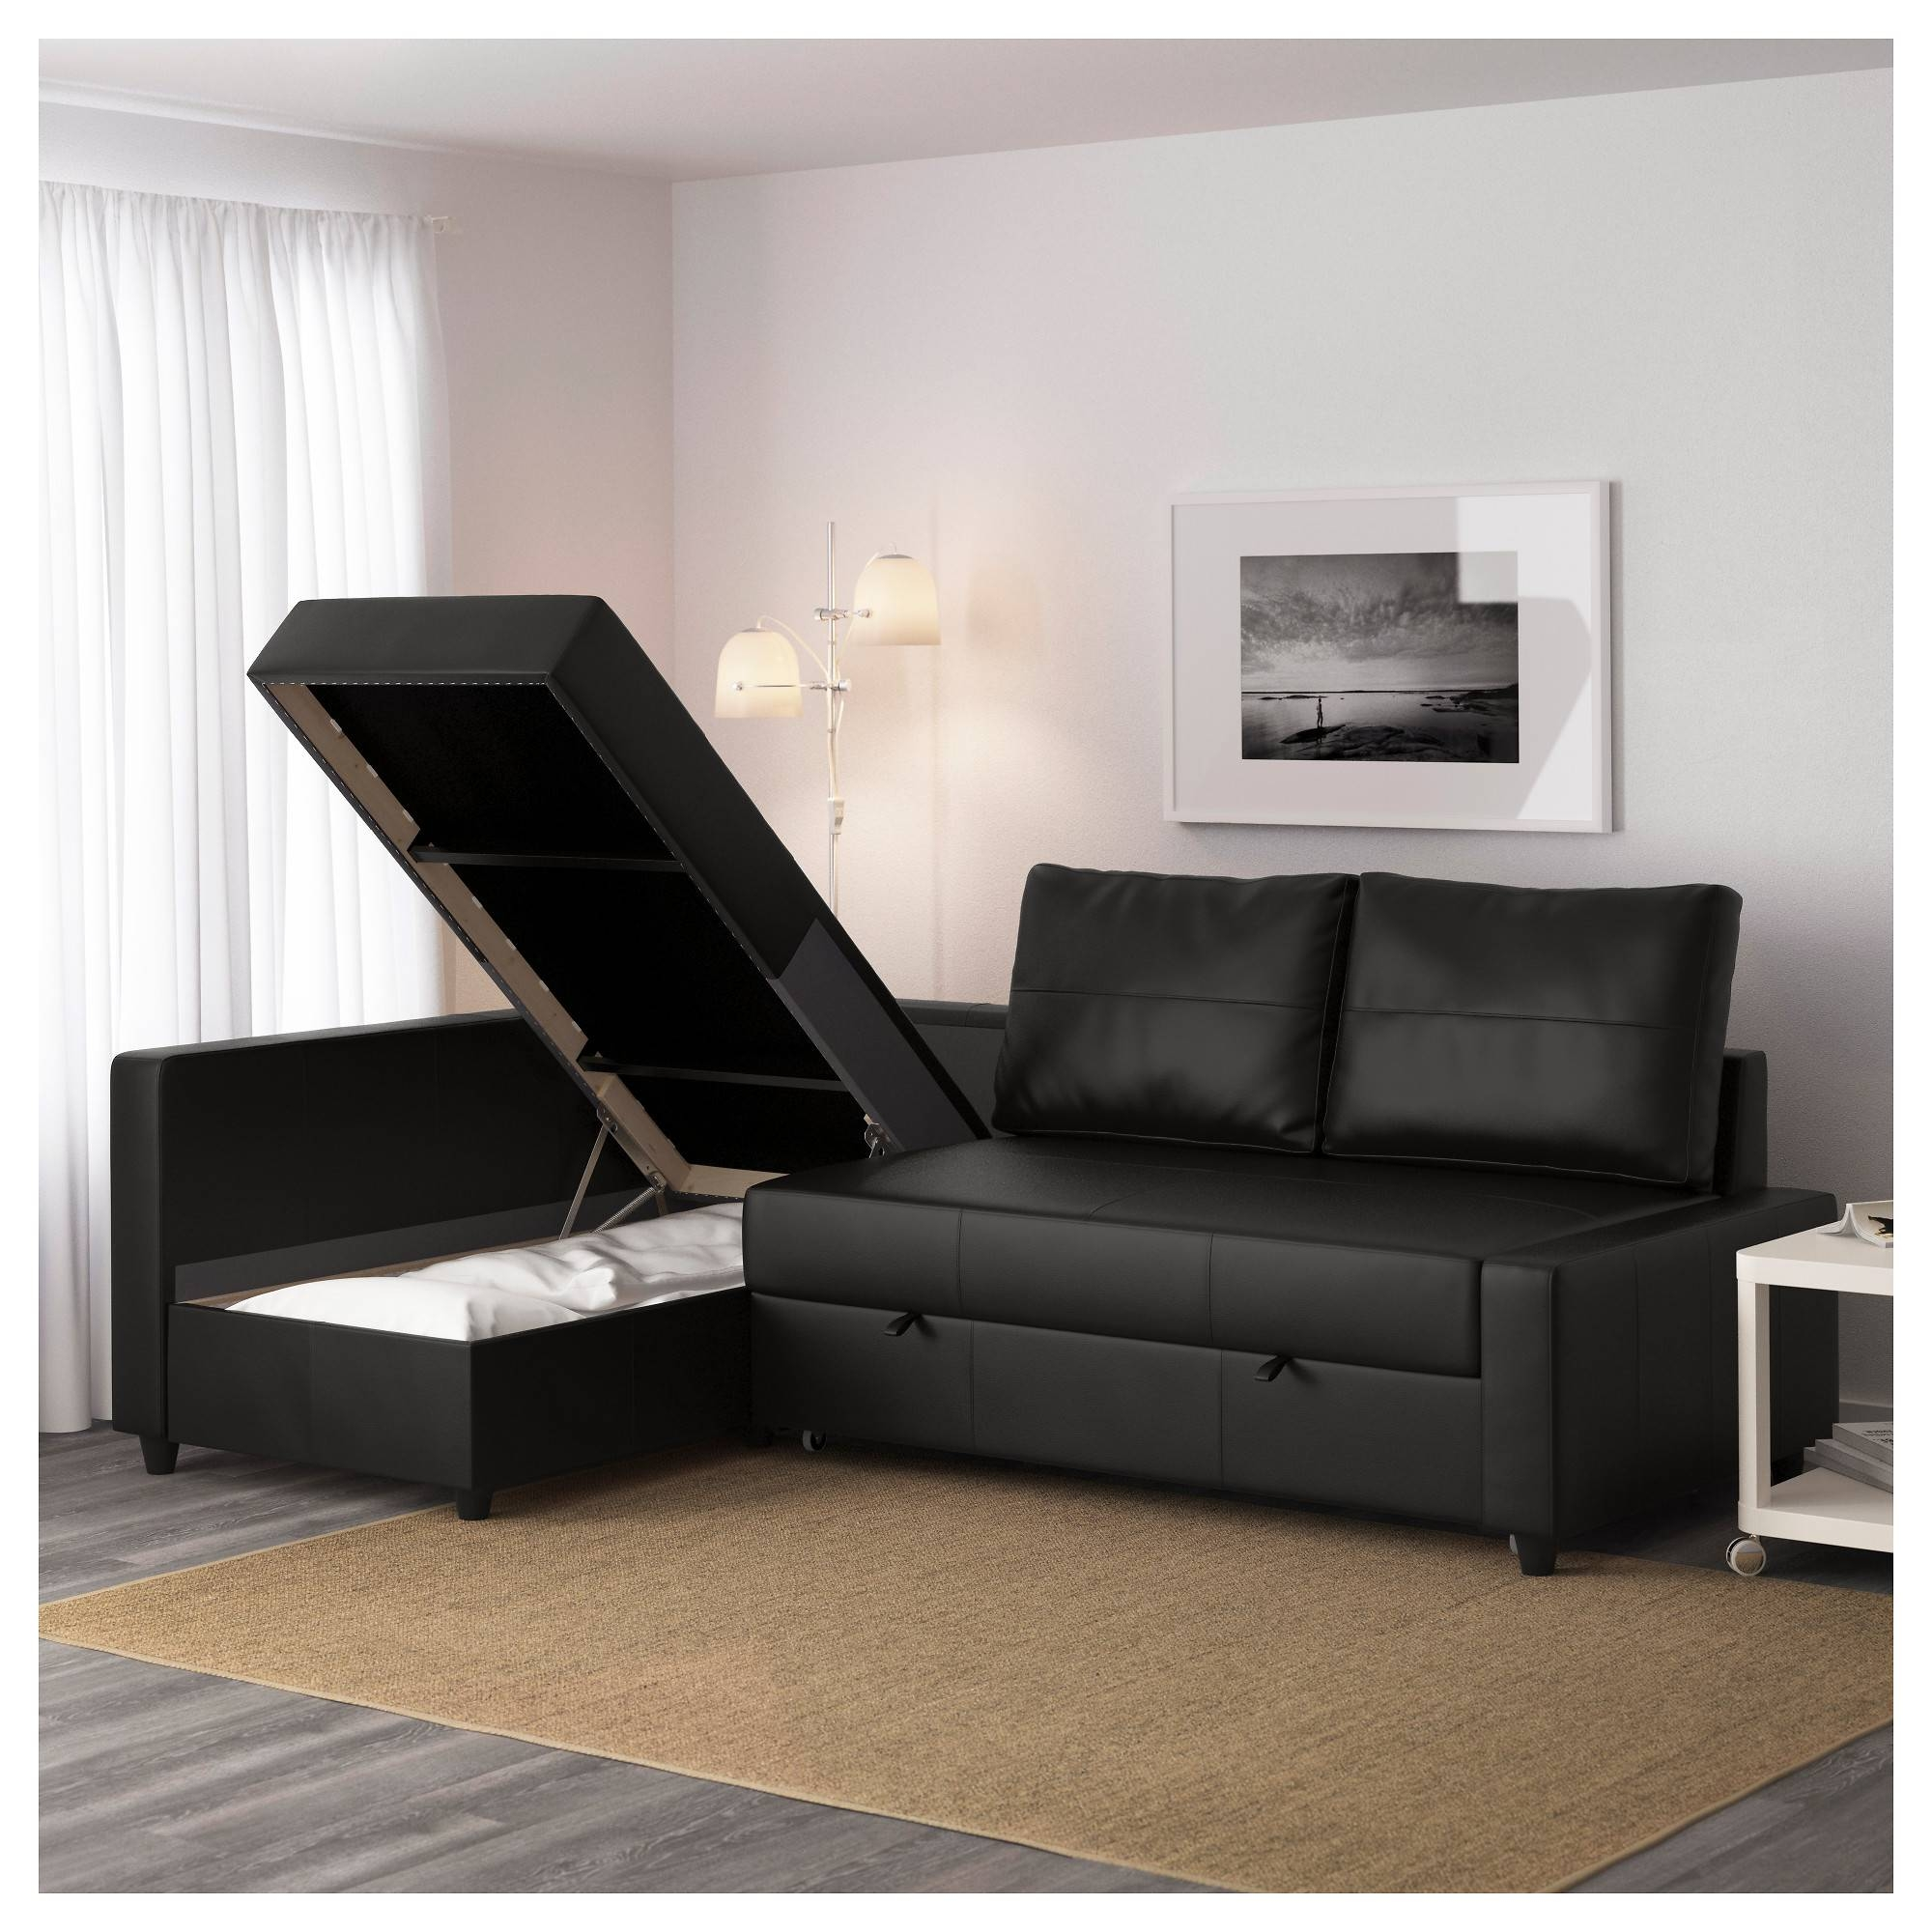 Friheten Sleeper Sectional,3 Seat W/storage - Skiftebo Dark Gray inside Chaise Sofa Beds With Storage (Image 4 of 15)